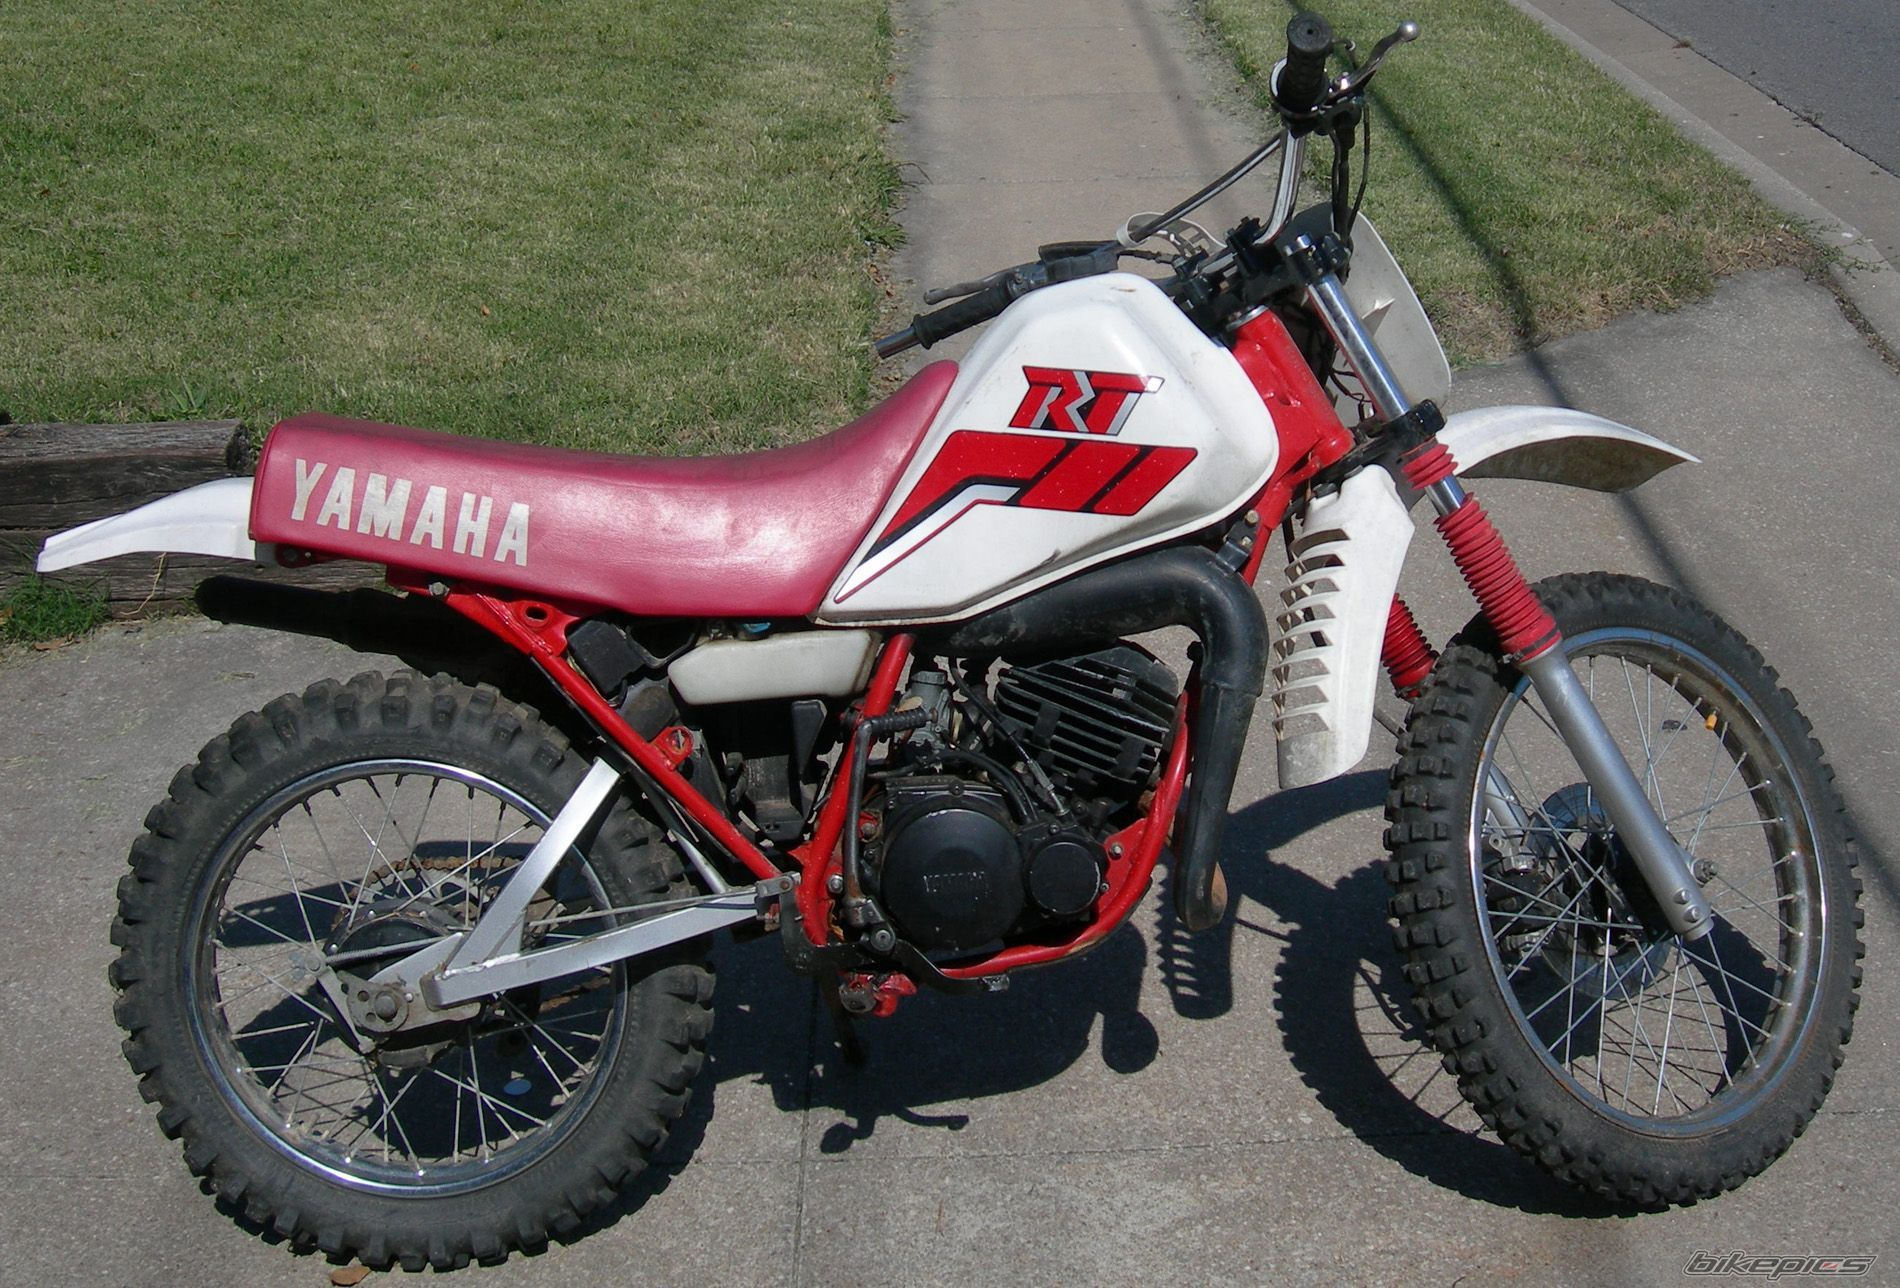 click on image to download 1990 yamaha rt180 service repair rh pinterest com Yamaha Dirt Bike Fuel Filters 1997 Yamaha RT 180 Parts